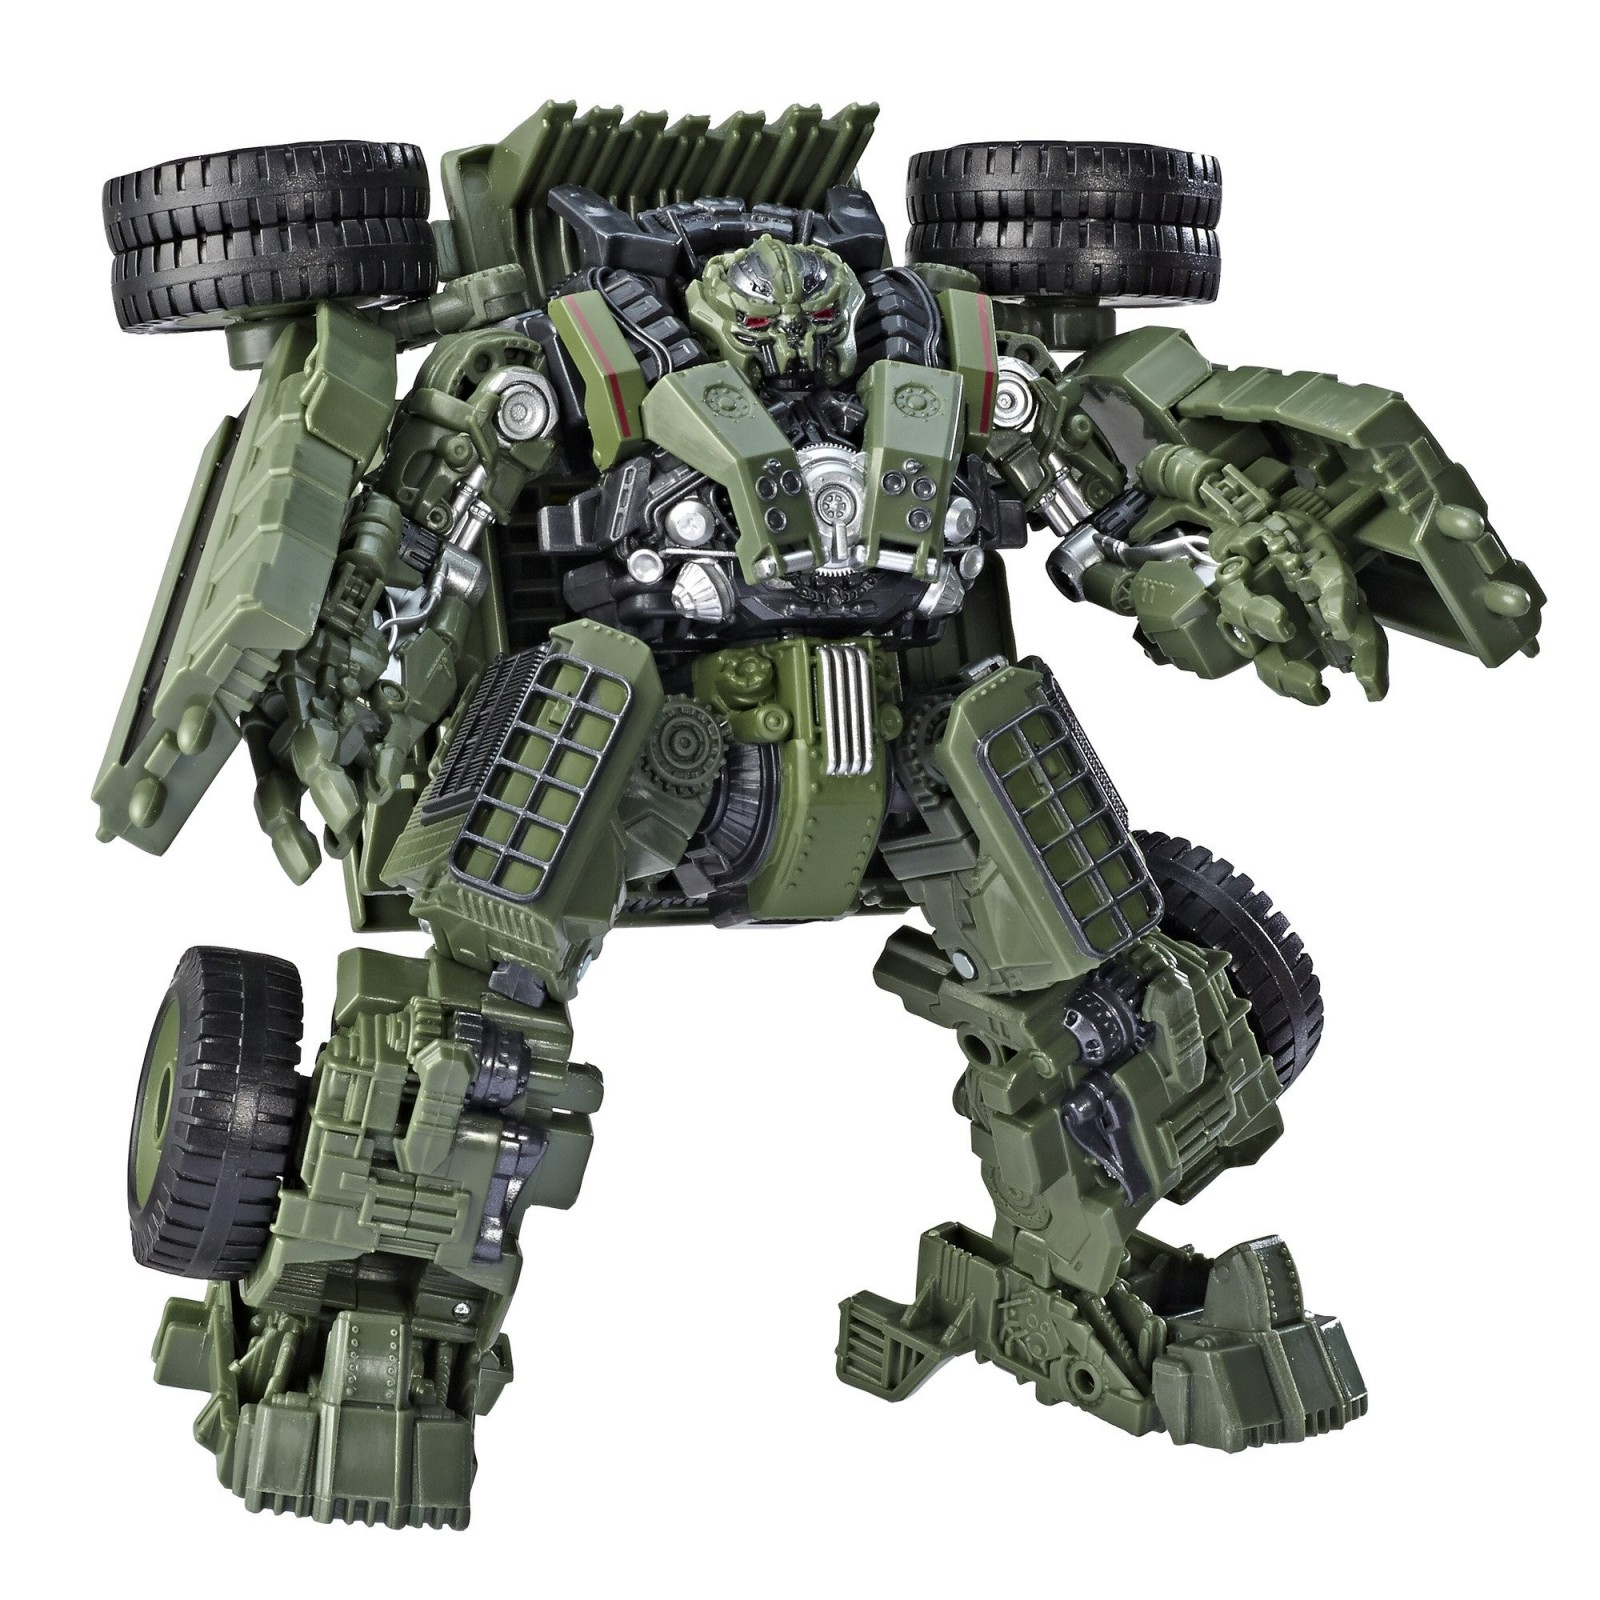 Transformers News: Latest Transformers Studio Series Voyagers Long Haul and KSI Boss Available To Order Online in US